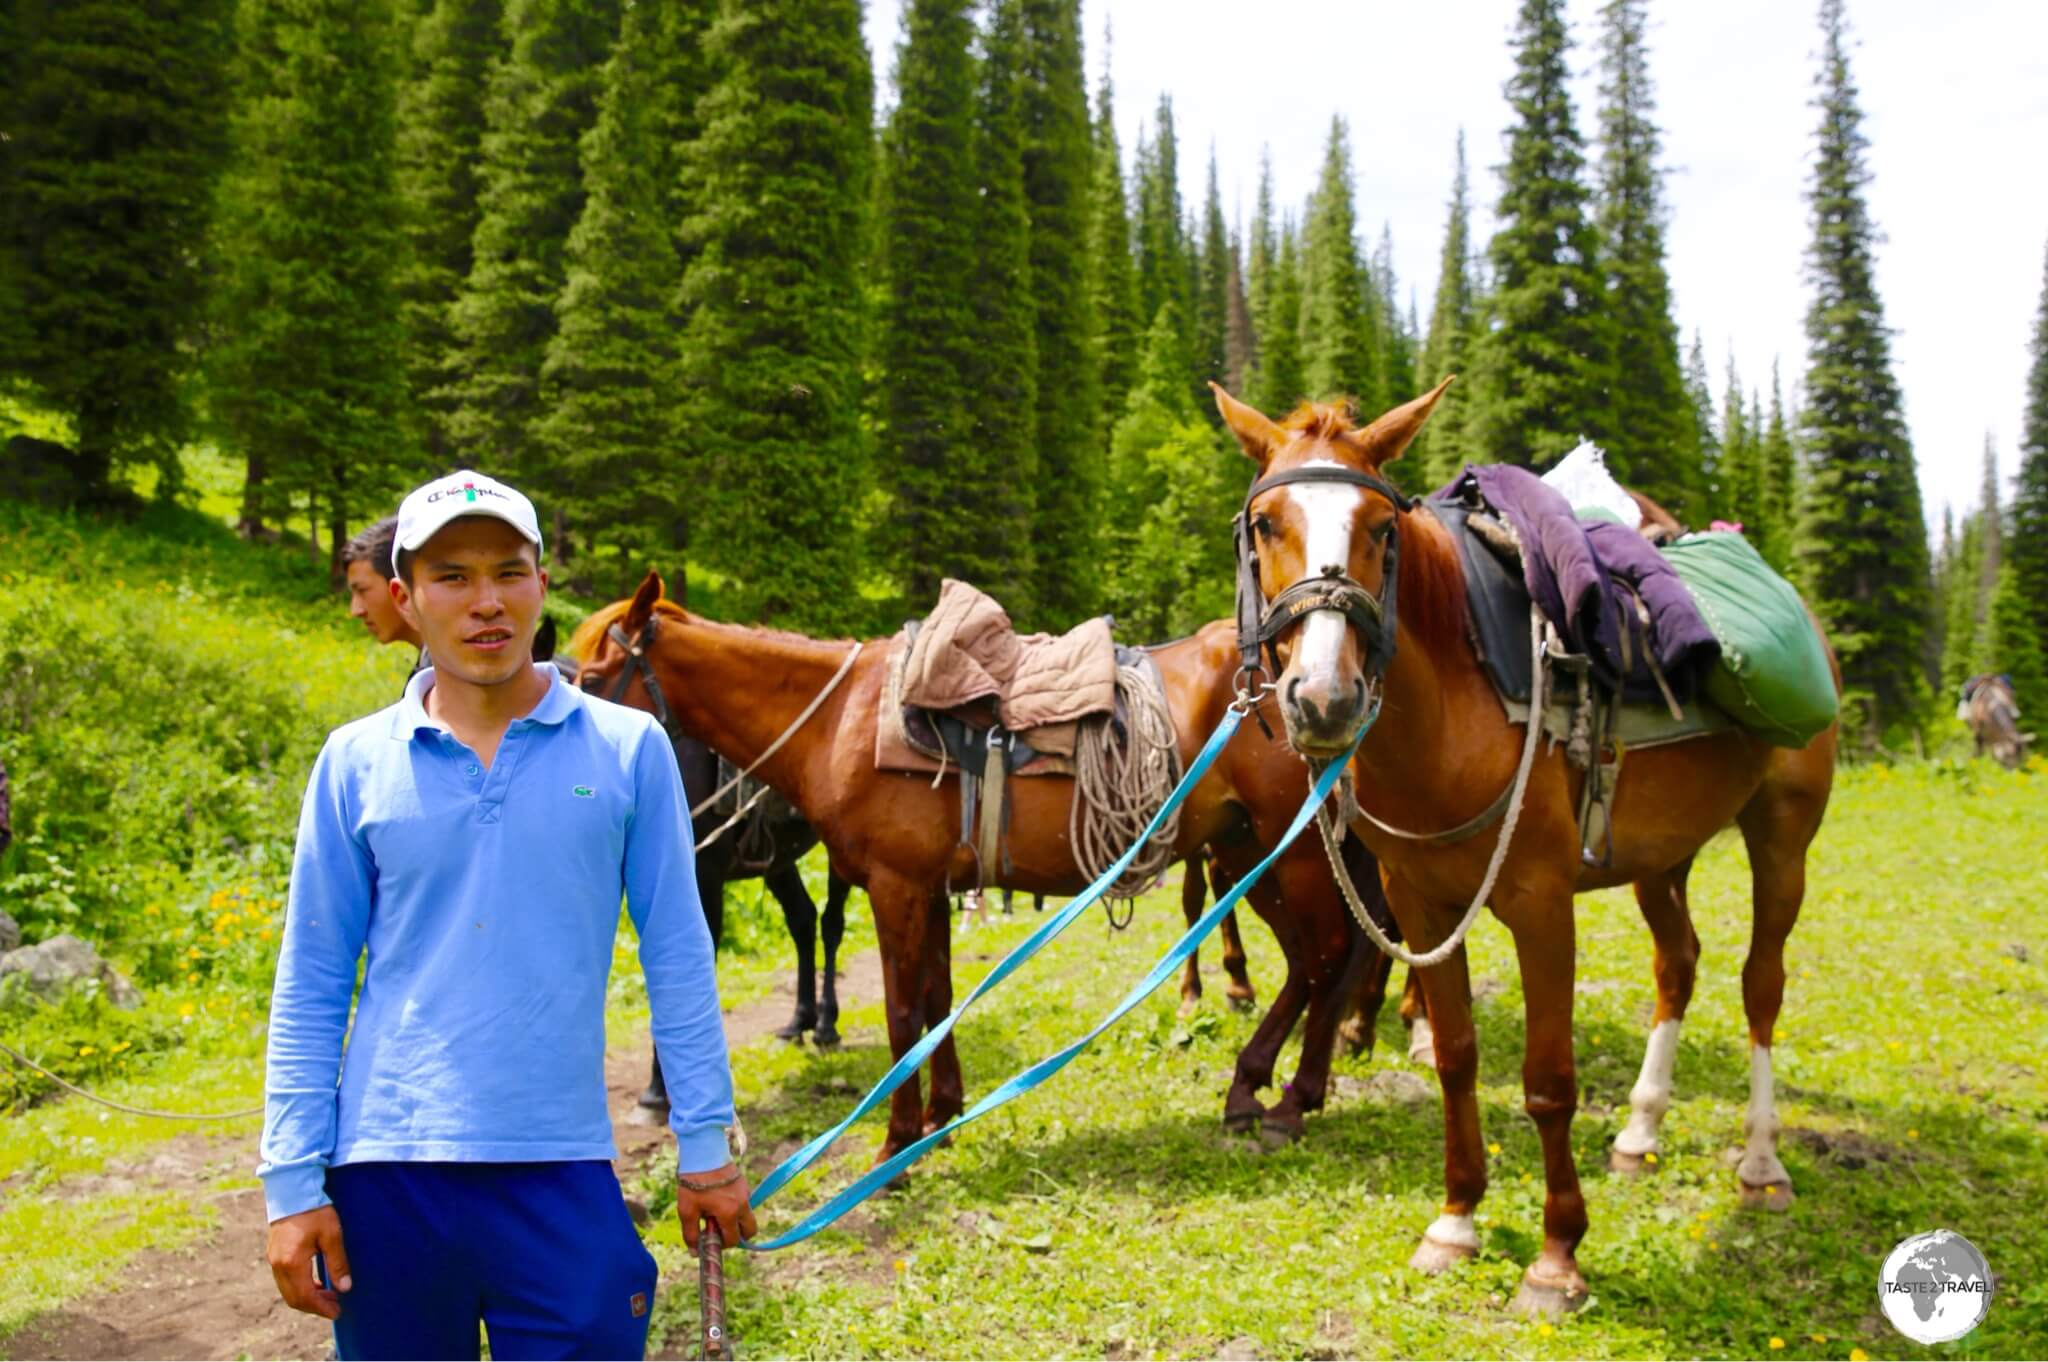 Horses are available for those who don't wish to do the gruelling hike but they are very pushy on the narrow trail.